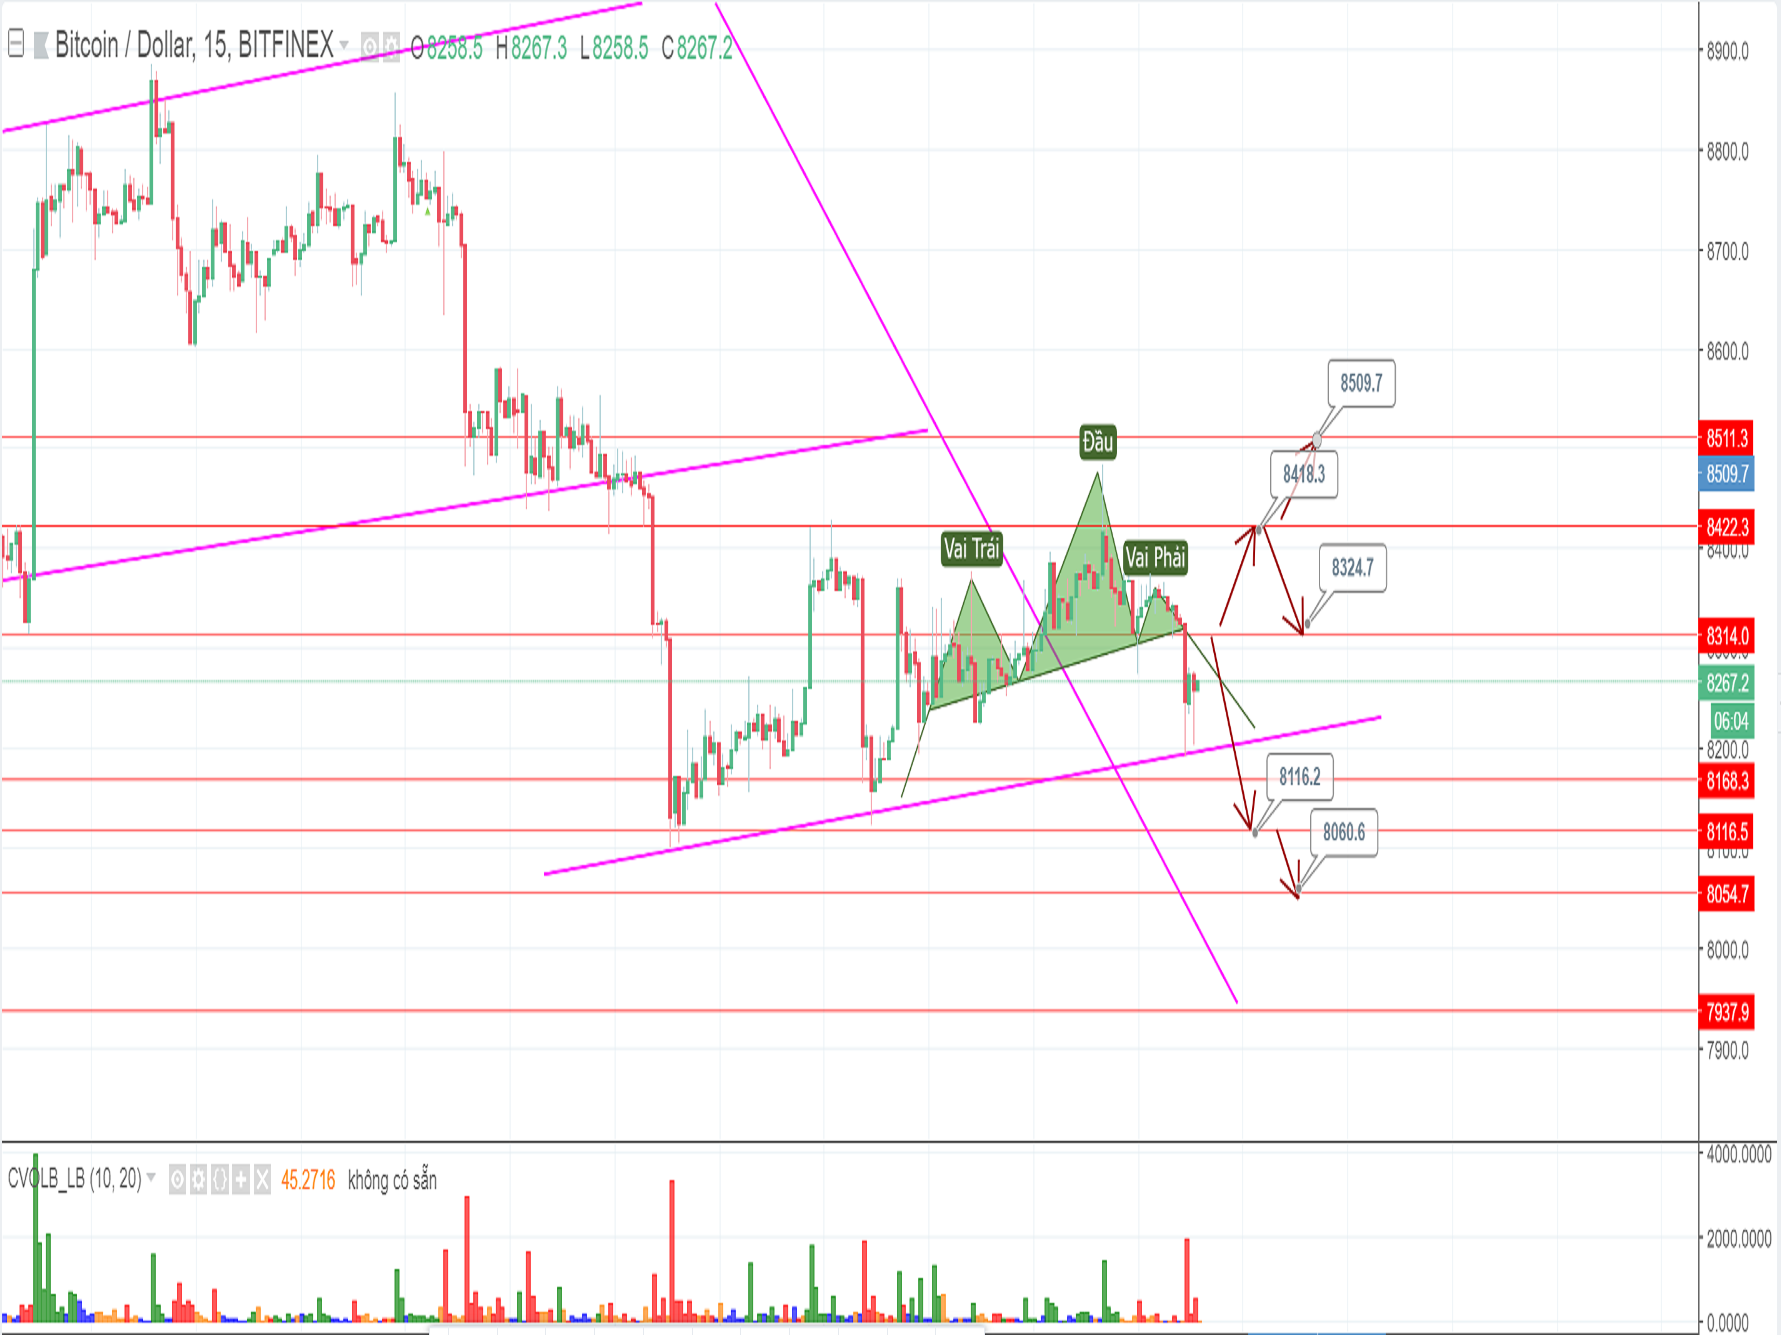 Two scenarios for Bitcoin price on Thursday (May 17th)?